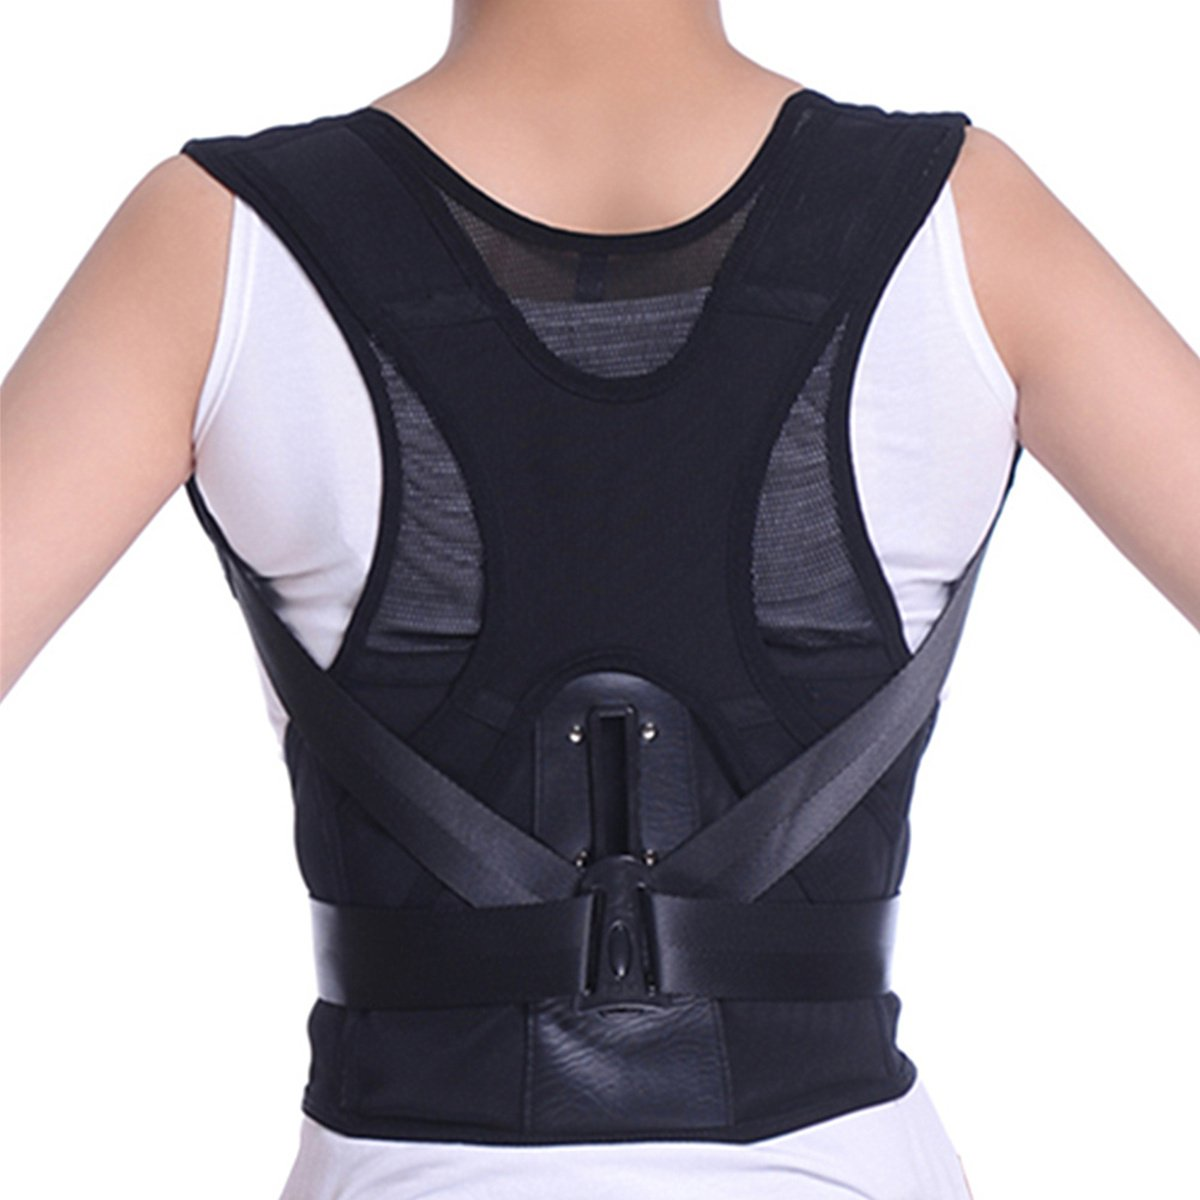 Tcare Adjustable Posture Corrector Waist Shoulder Brace Back Support, Back Lumbar Pain Relief Belt (M)